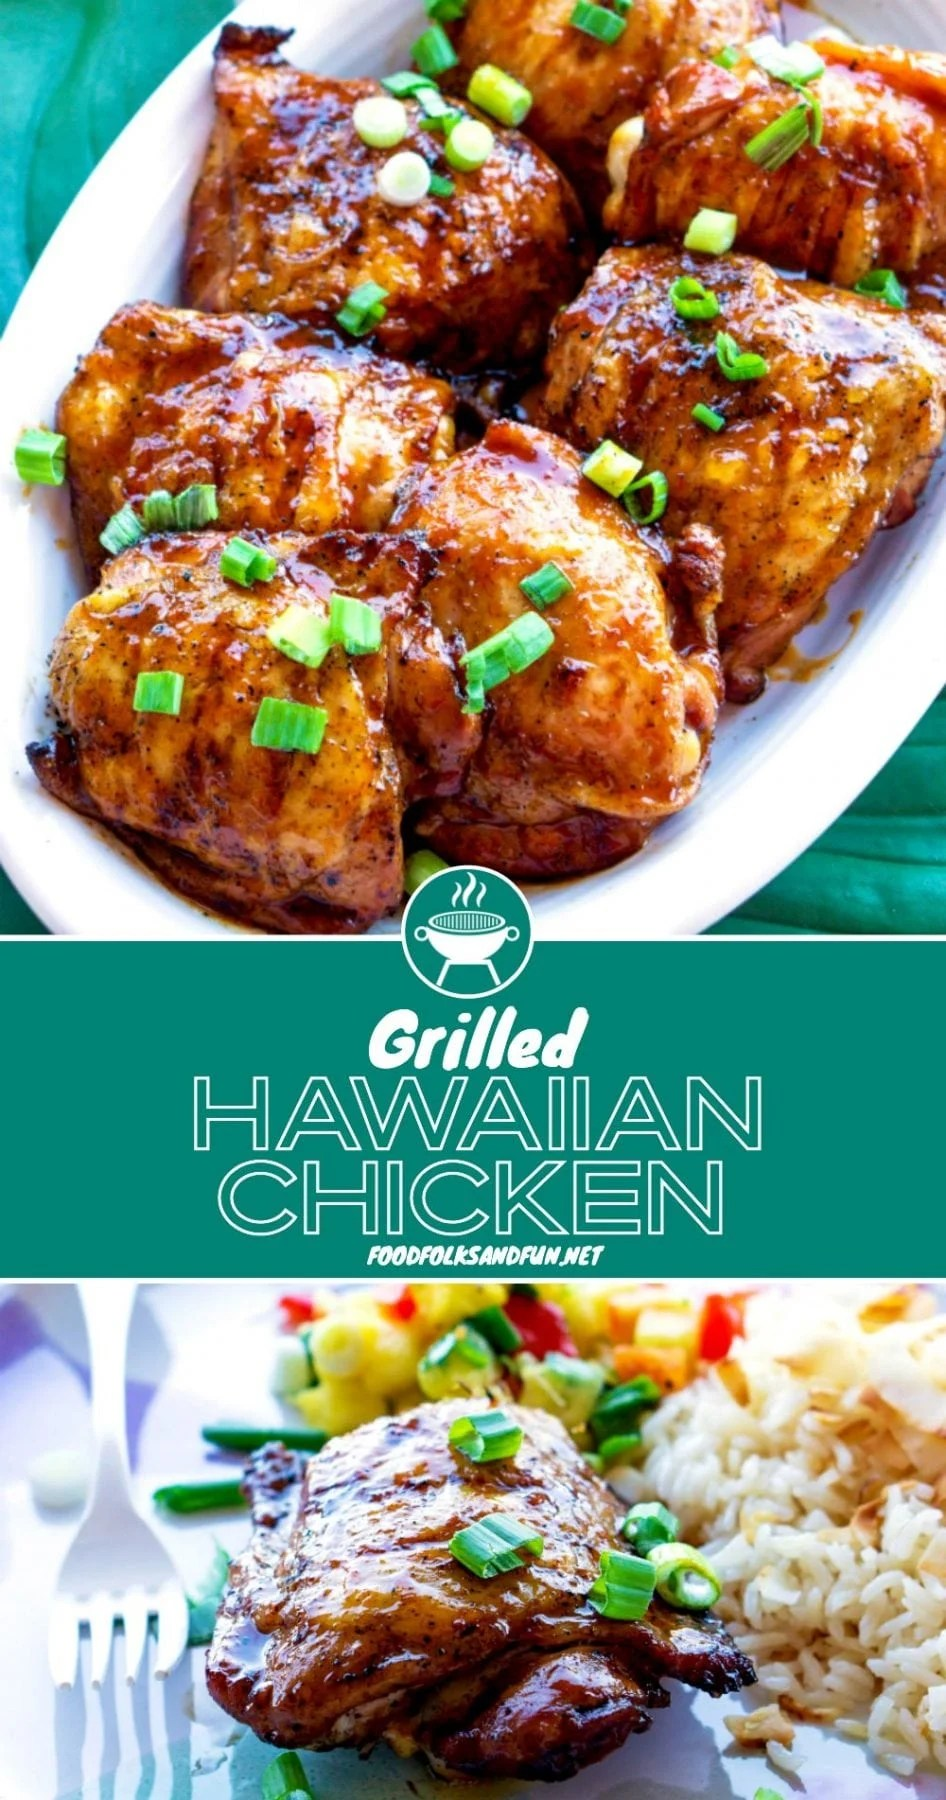 This Grilled Hawaiian Chicken is so tender and delicious and it's covered in the best sticky-sweet Pineapple Sauce! We make this chicken almost every week during the summer and it never disappoints!  via @foodfolksandfun